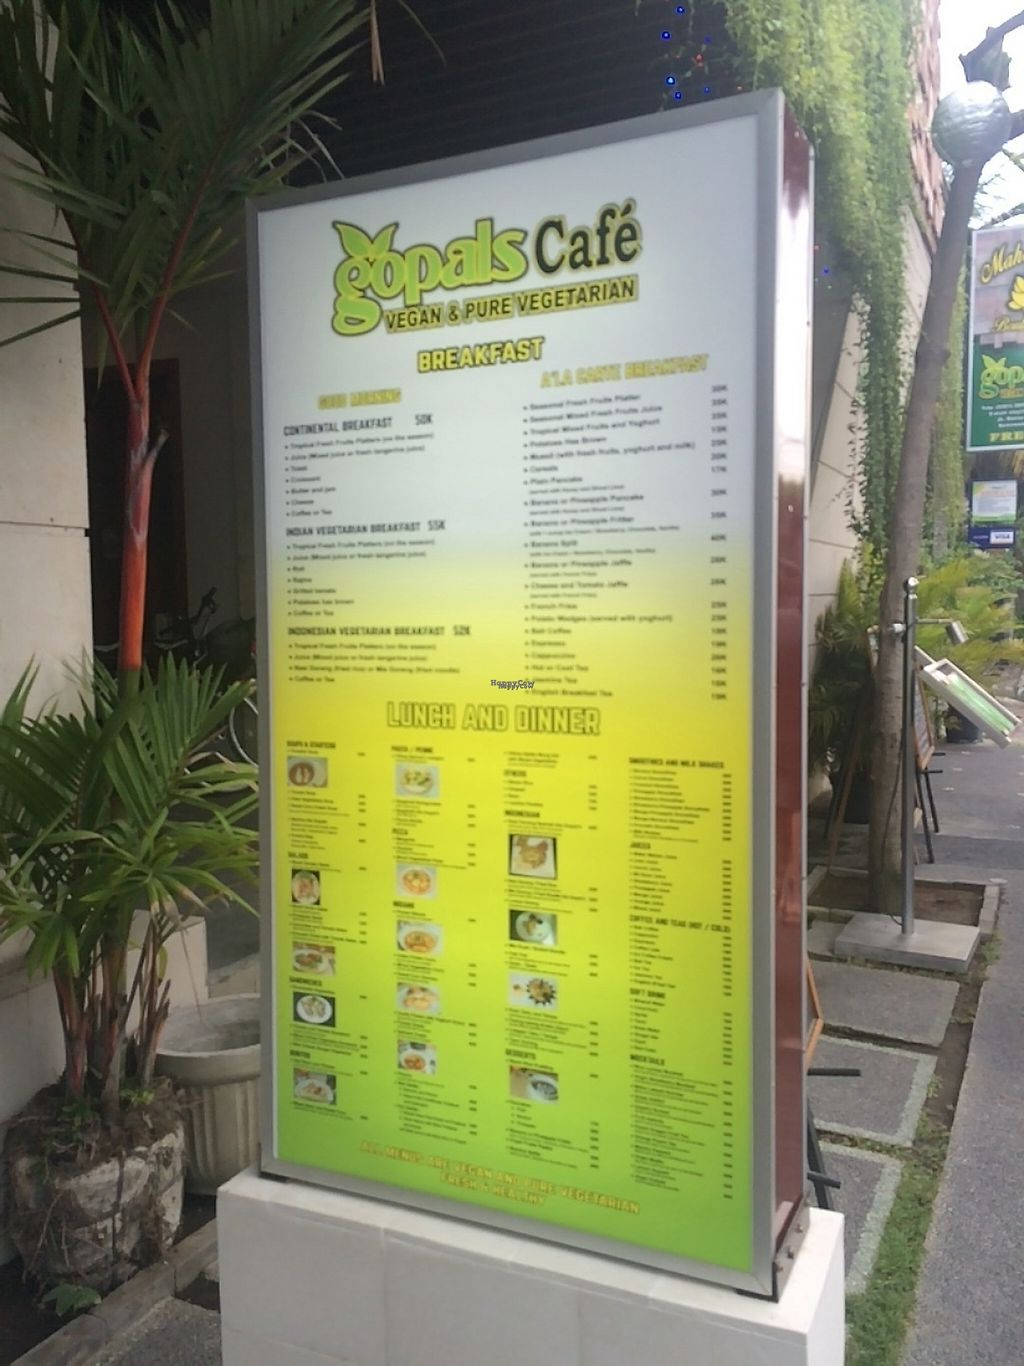 "Photo of Gopal's Cafe  by <a href=""/members/profile/~Florence~"">~Florence~</a> <br/>Gopal's Café menu <br/> March 13, 2017  - <a href='/contact/abuse/image/70001/236002'>Report</a>"